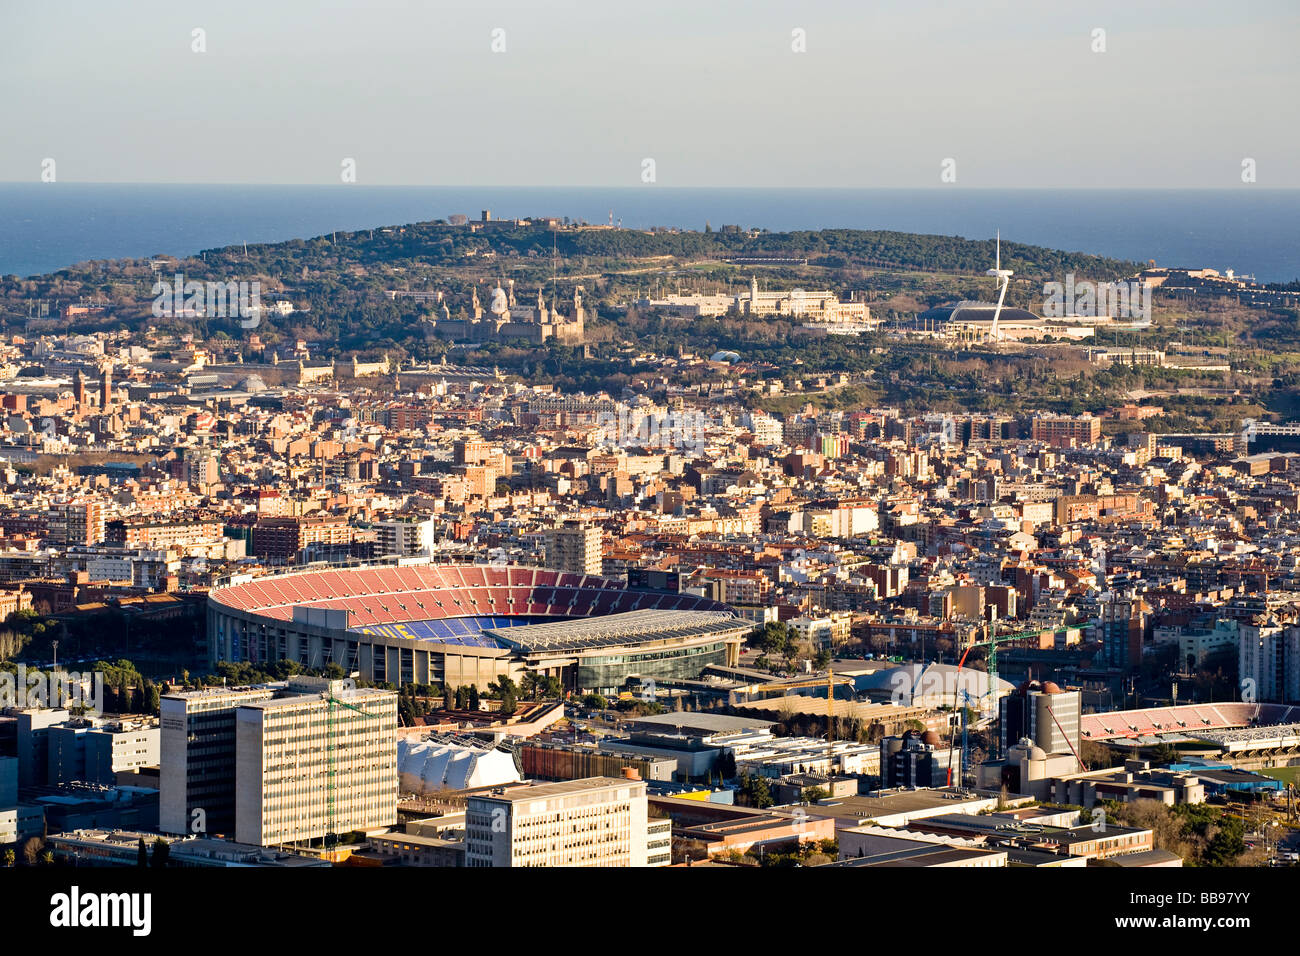 Camp Nou stadium and montjuic mmountain overview - Stock Image